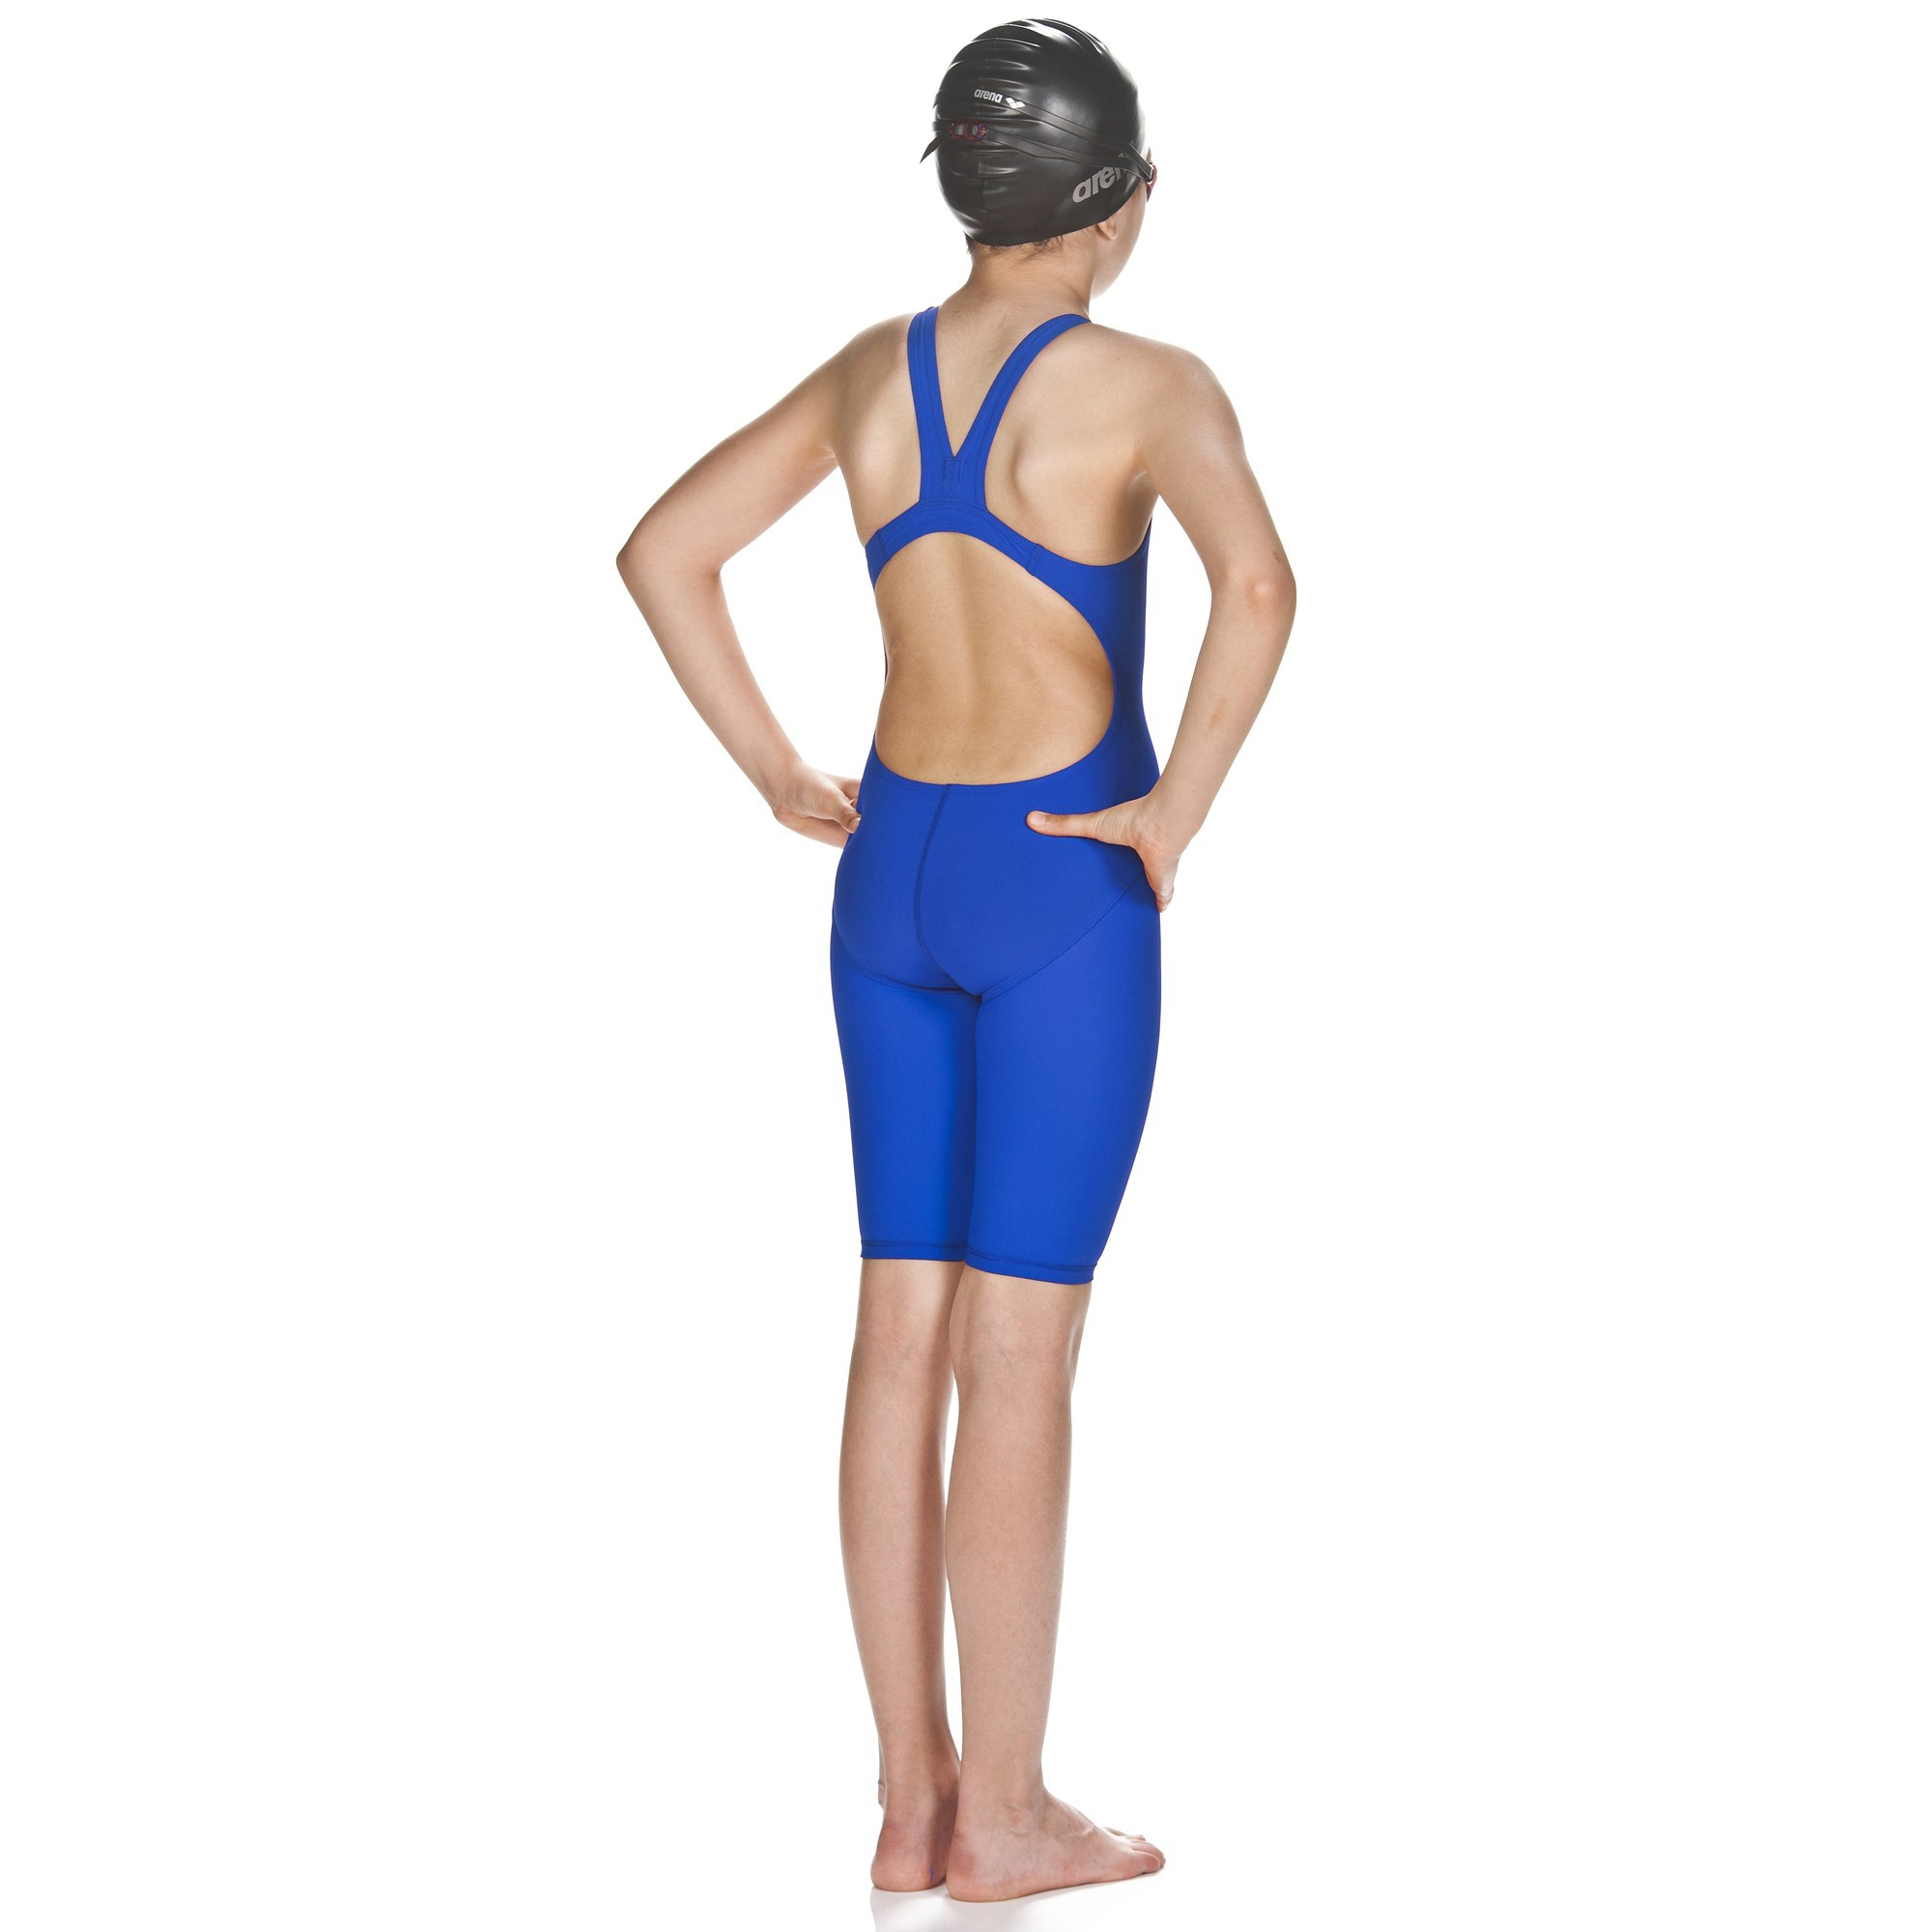 Arena Girls Powerskin St Full Body Short Leg Open Back